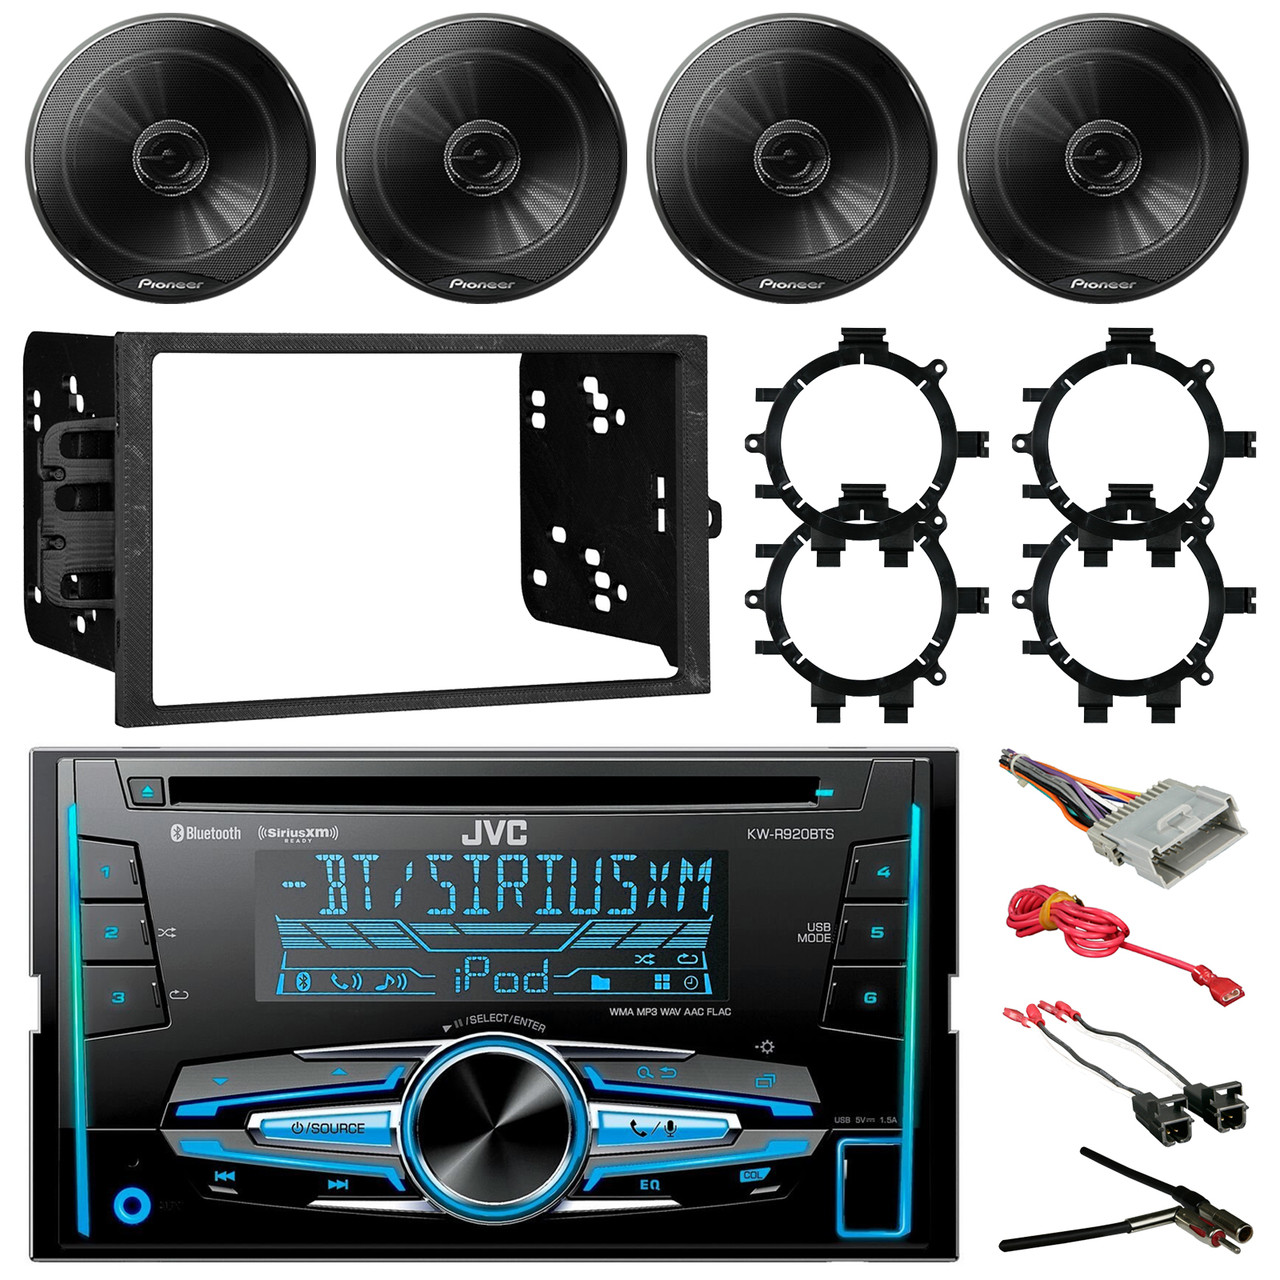 jvc kw r920bts double din bluetooth car cd player stereo receiver bundle combo with 4x 6 5 inch 250w coaxial speakers w brackets 4x wiring harness  [ 1280 x 1280 Pixel ]